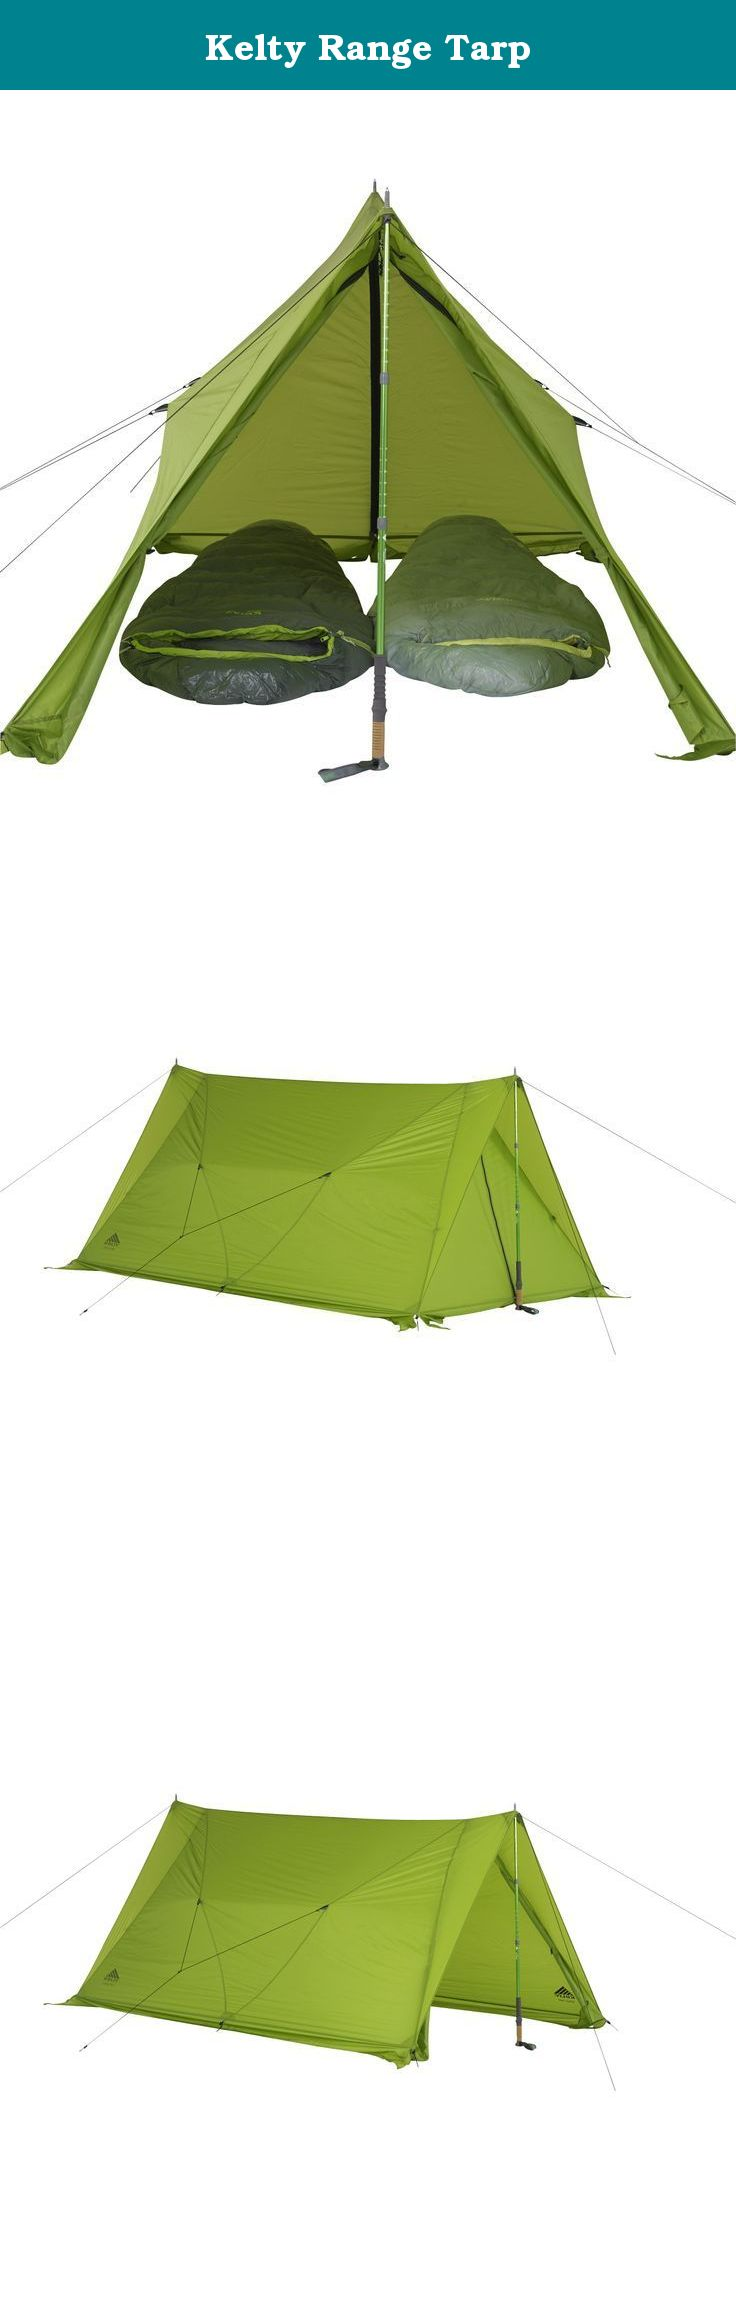 Kelty Range Tarp. Weather the elements every season of year with the extreme versatility of this lightweight trekking pole pitch tarp tent. Featuring two doors and ground flaps to fend against bugs as easily as snow, it makes finding shelter effortless wherever you roam. The adjustable stake loops will keep the tent nice and taut and are easily adjusted. Guyline storage pockets keep your guy lines neat and untangled when not in use, saving you time for when you need them.